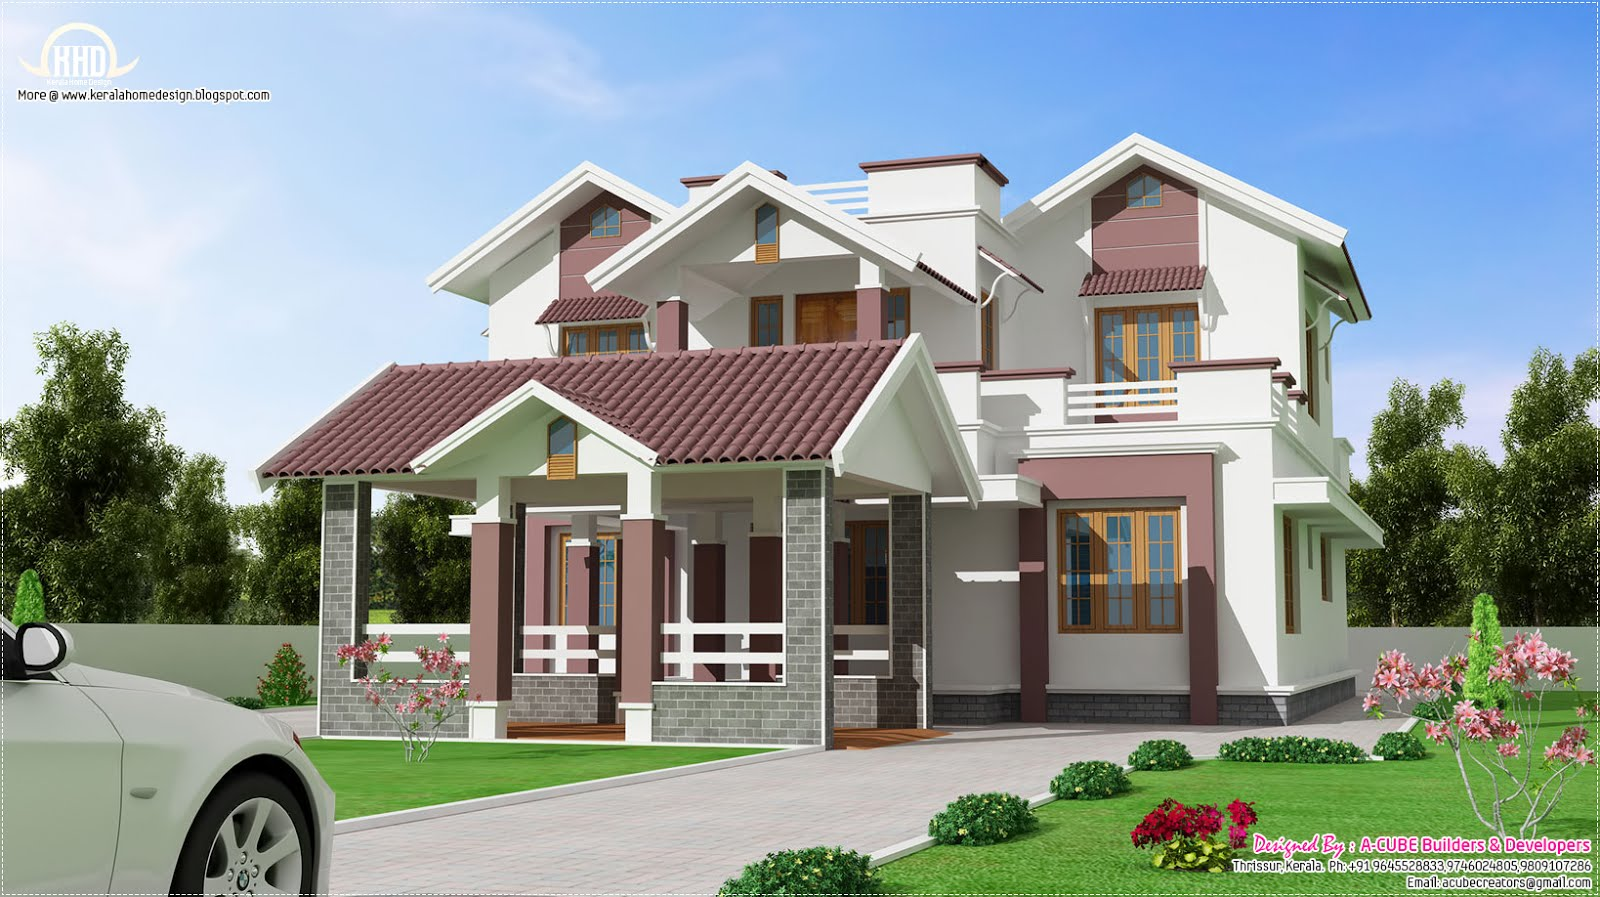 Beautiful new 2 floor villa design kerala home design and floor plans - New homes designs photos ...